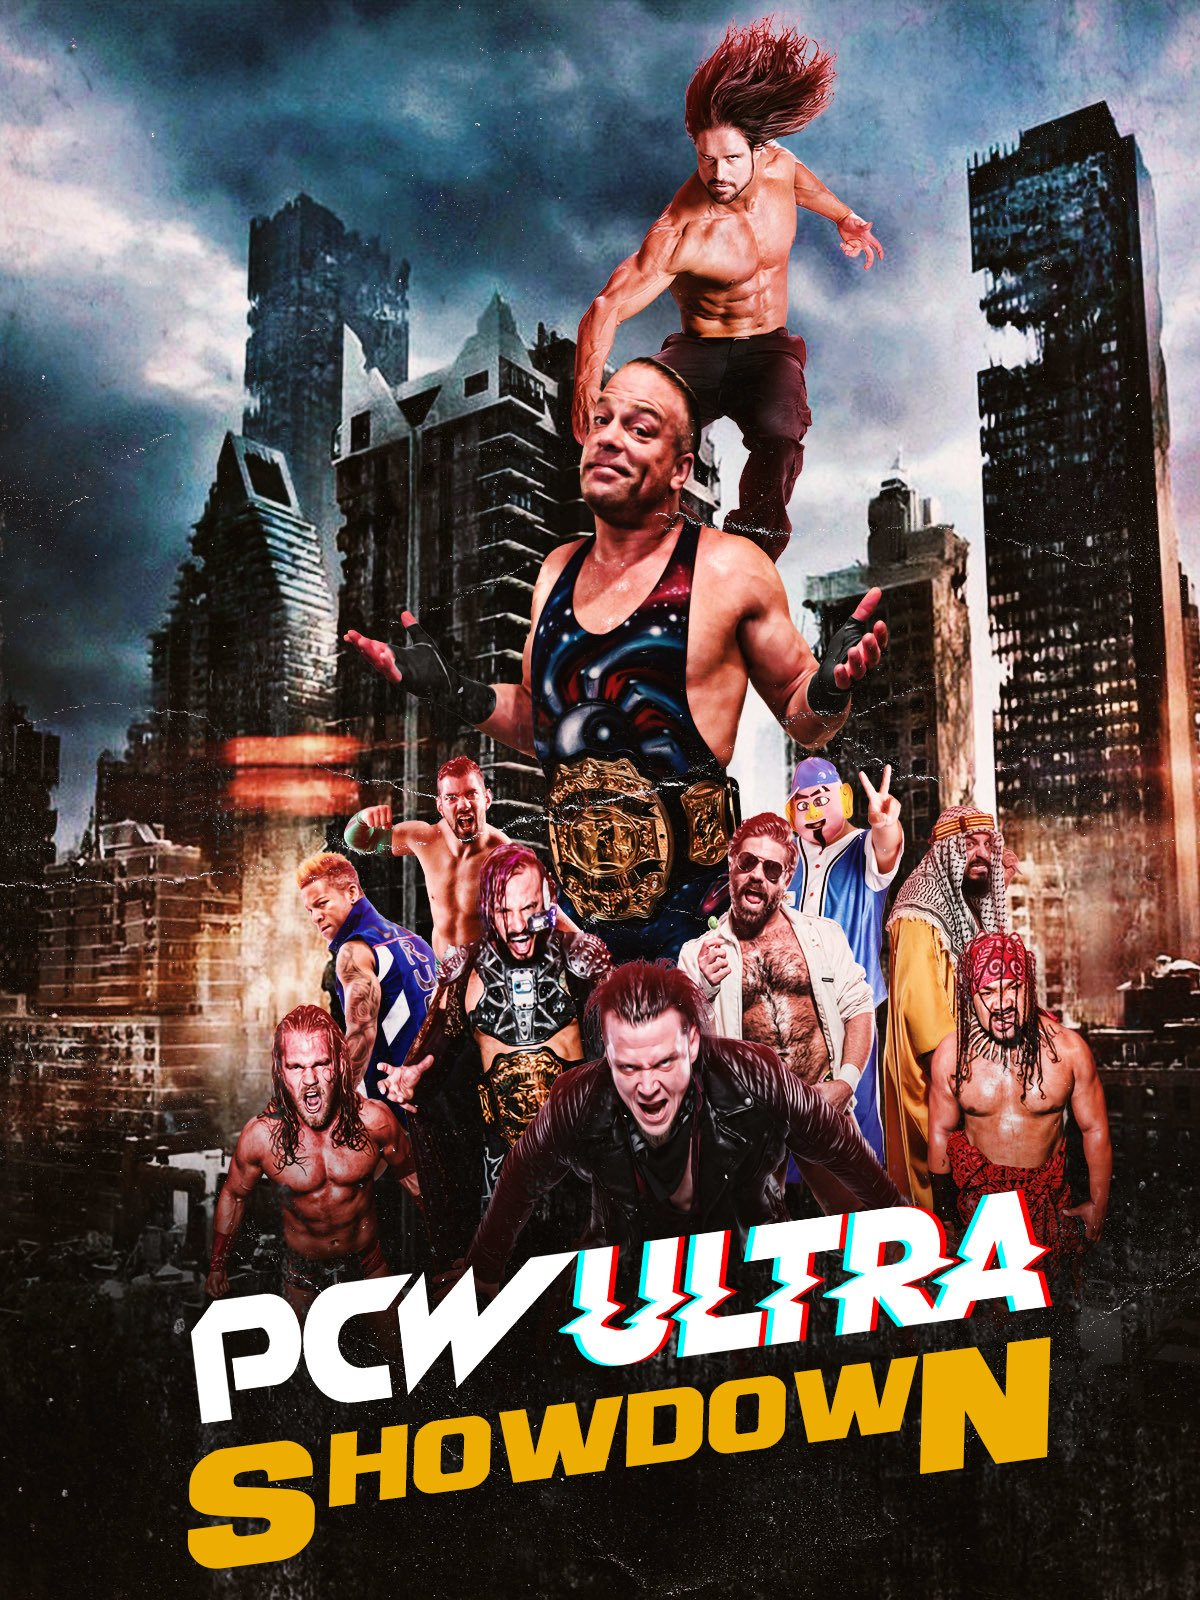 PCW Ultra Showdown